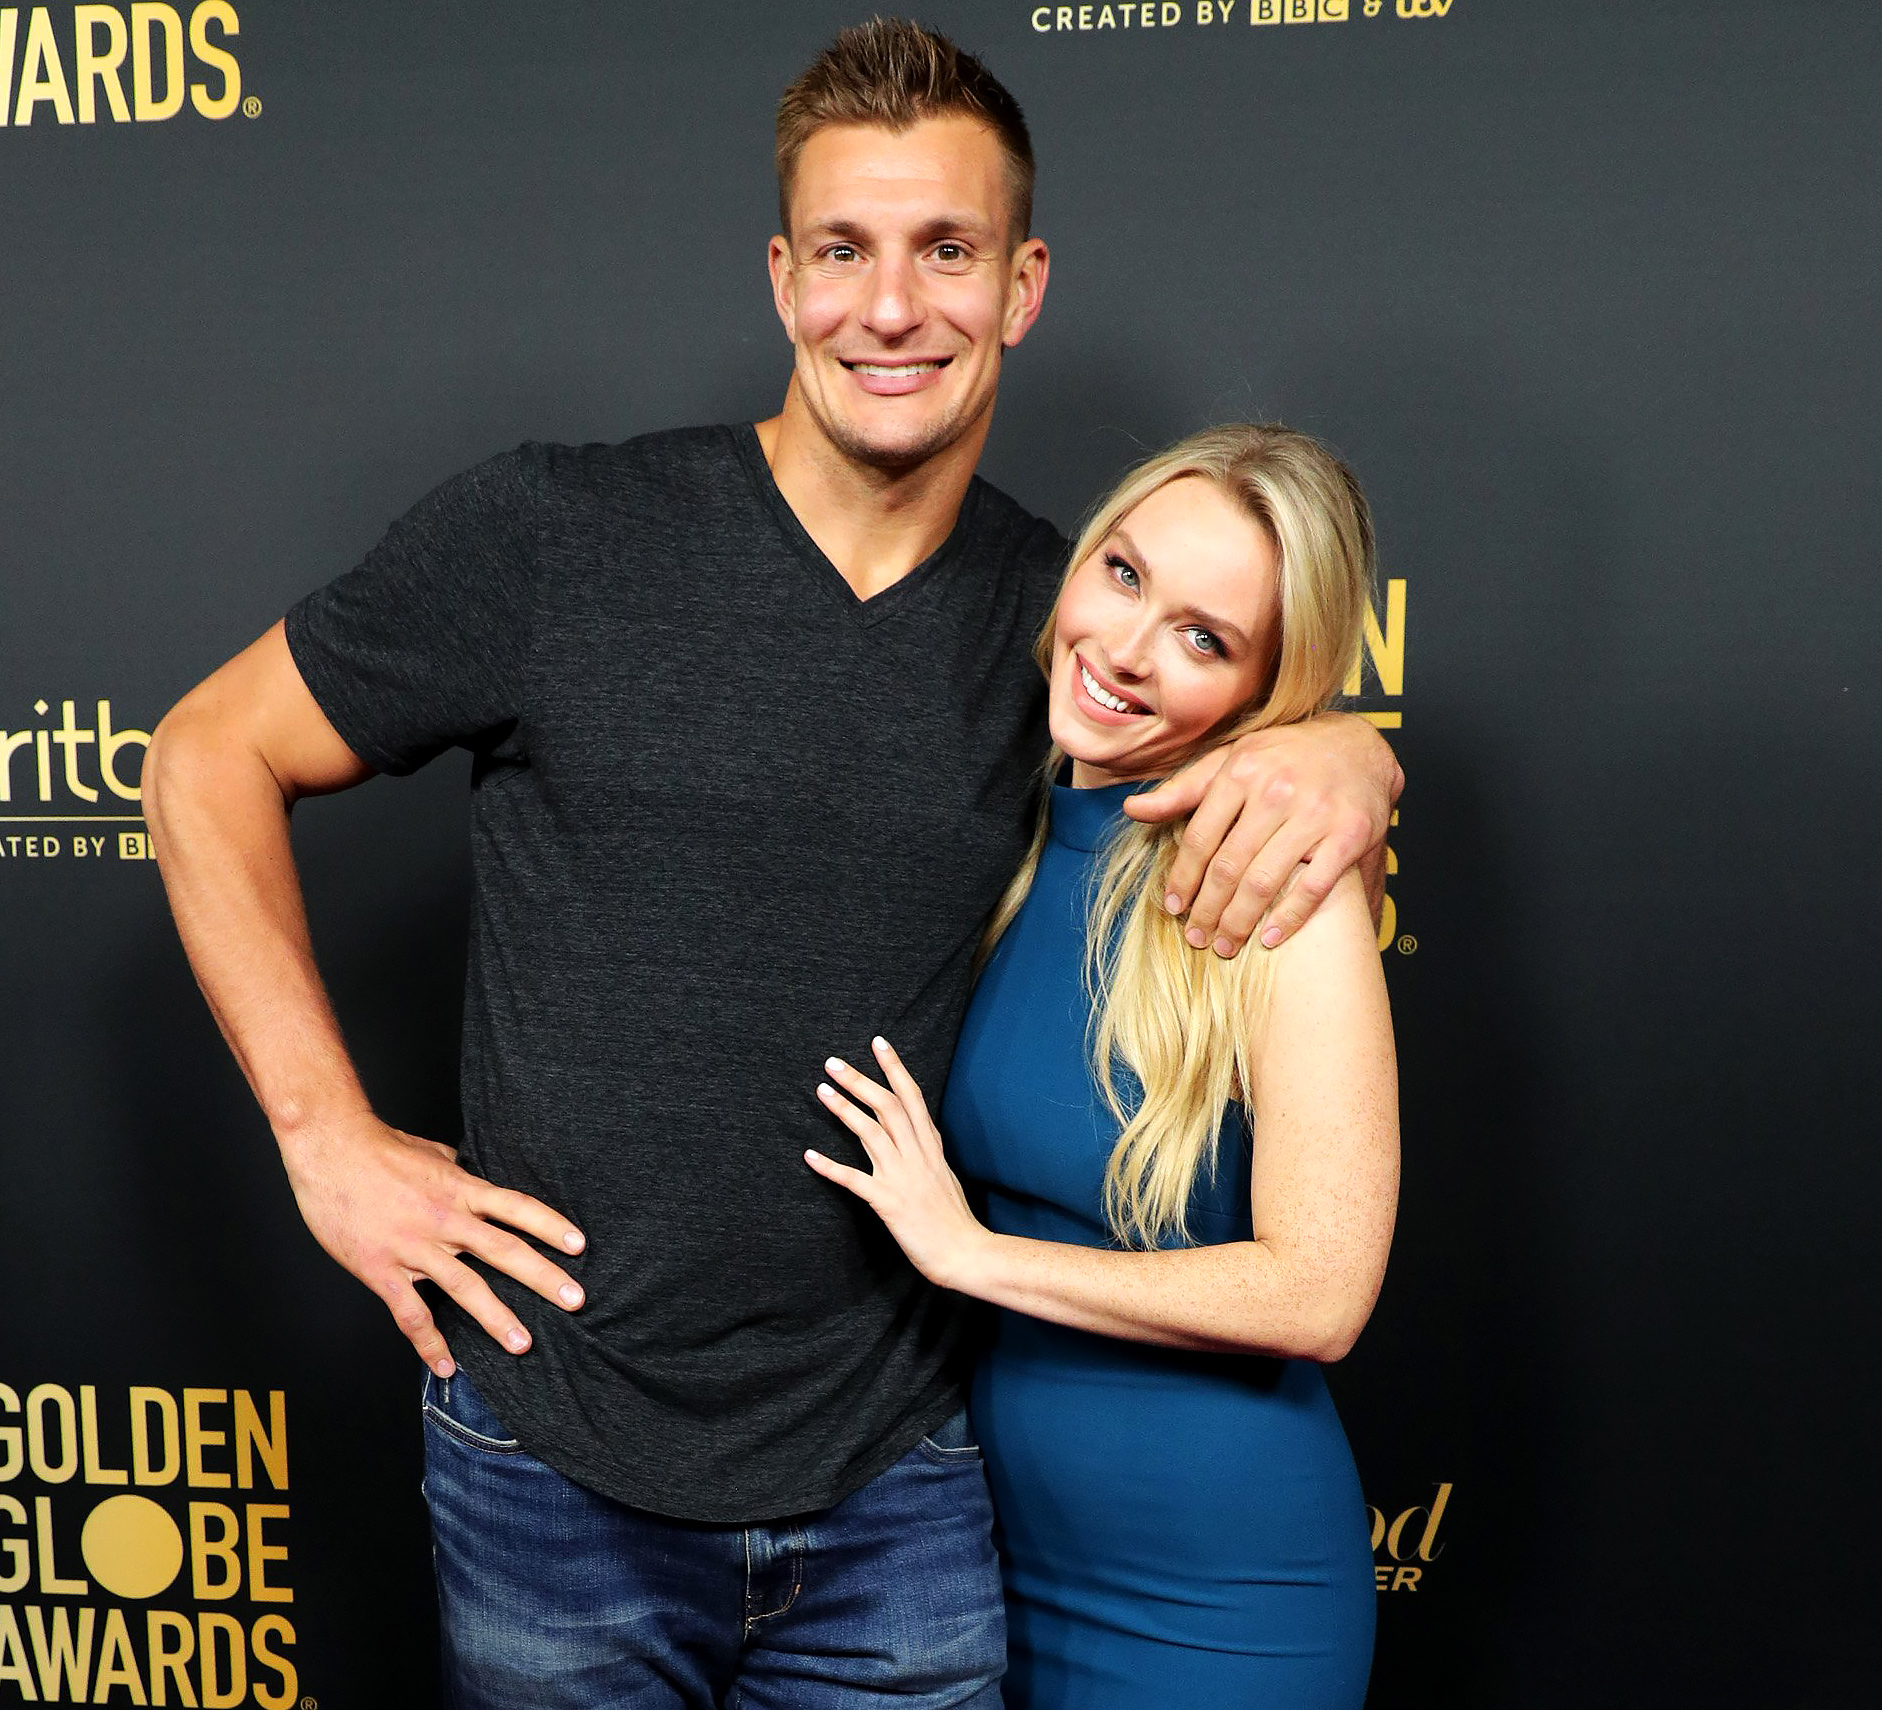 Camille Kostek Says Quarantine Has Brought Her and Rob Gronkowski Closer